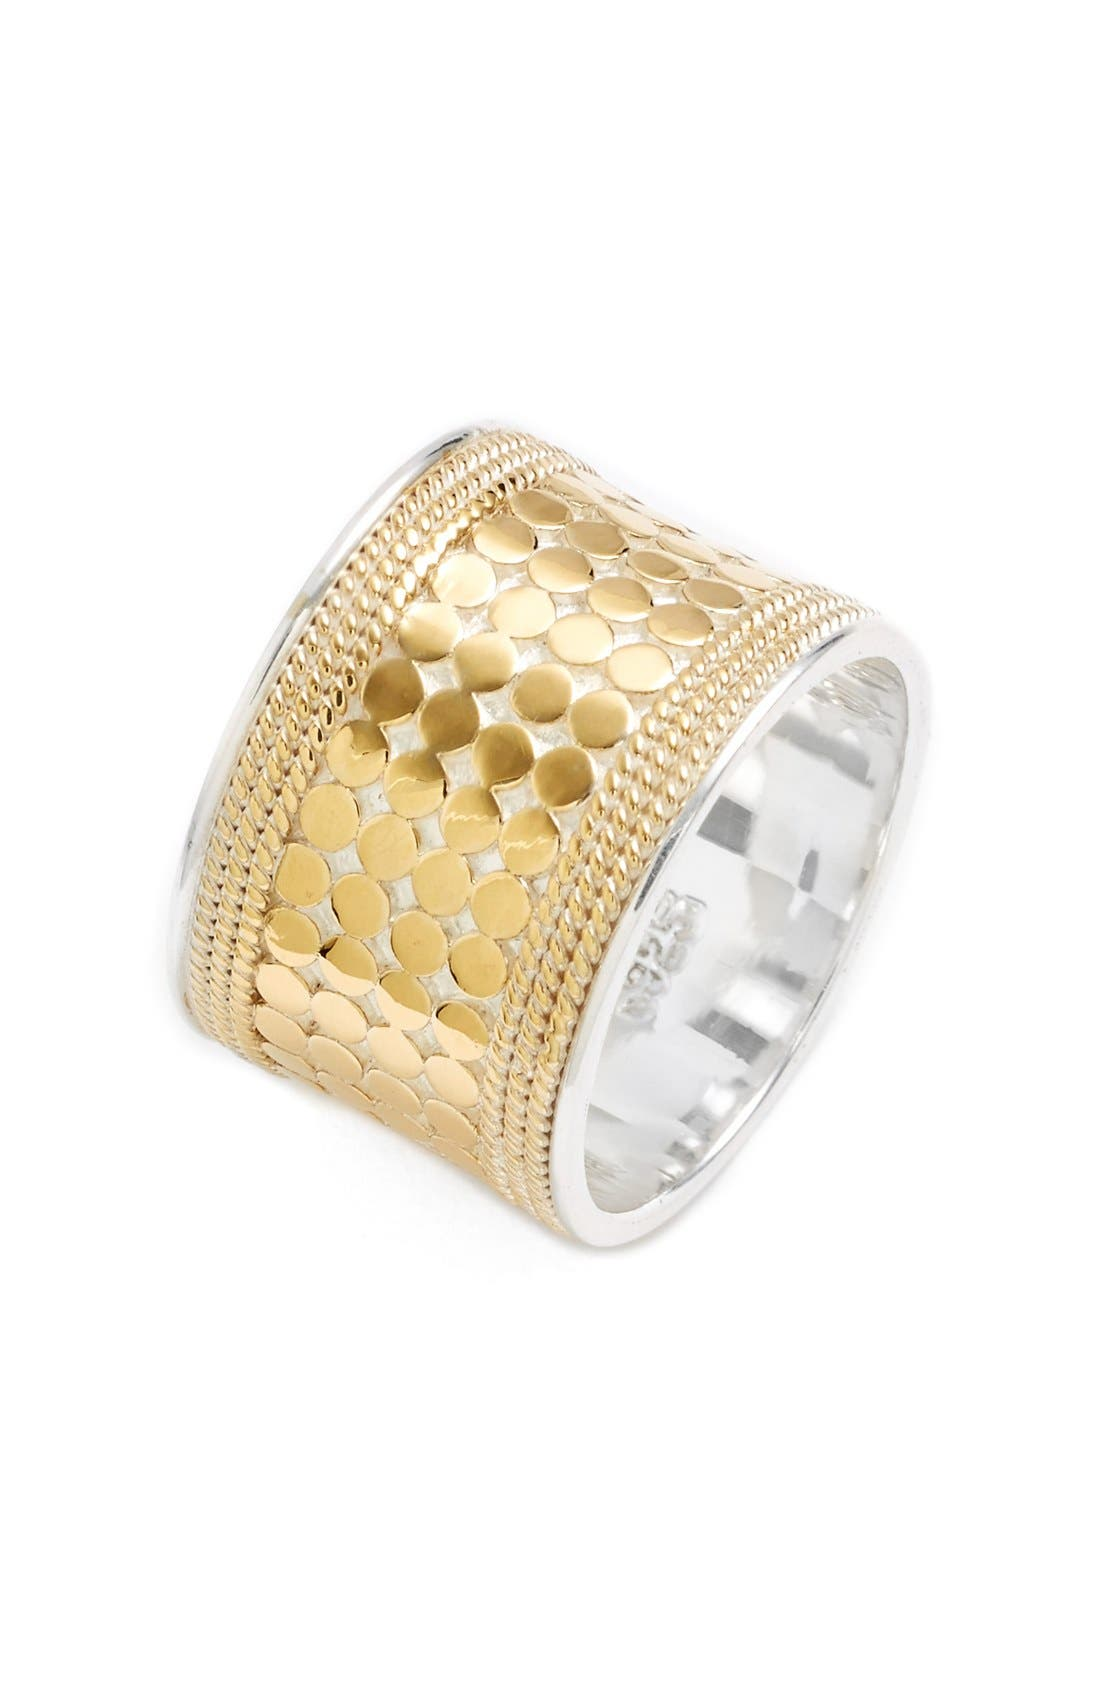 Alternate Image 1 Selected - Anna Beck 'Gili' Cigar Band Ring